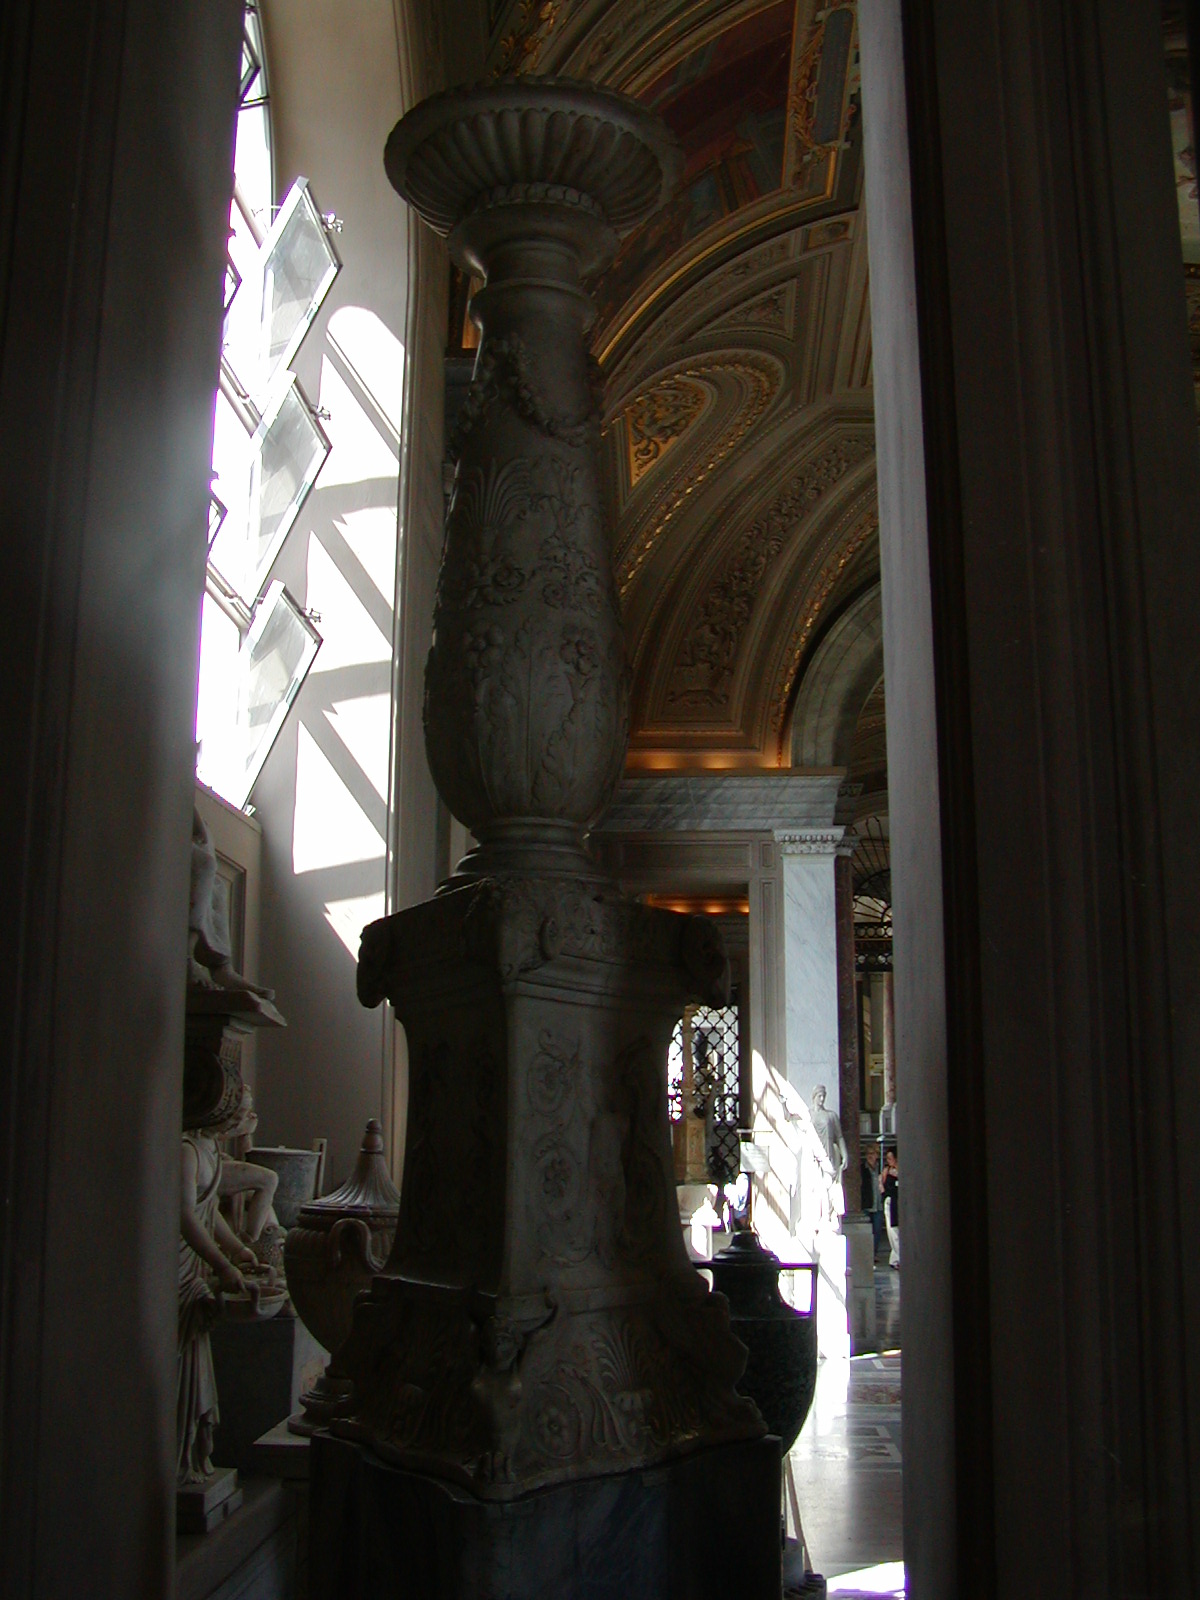 Gallery of the Candelabra - 2002-09-10-145847